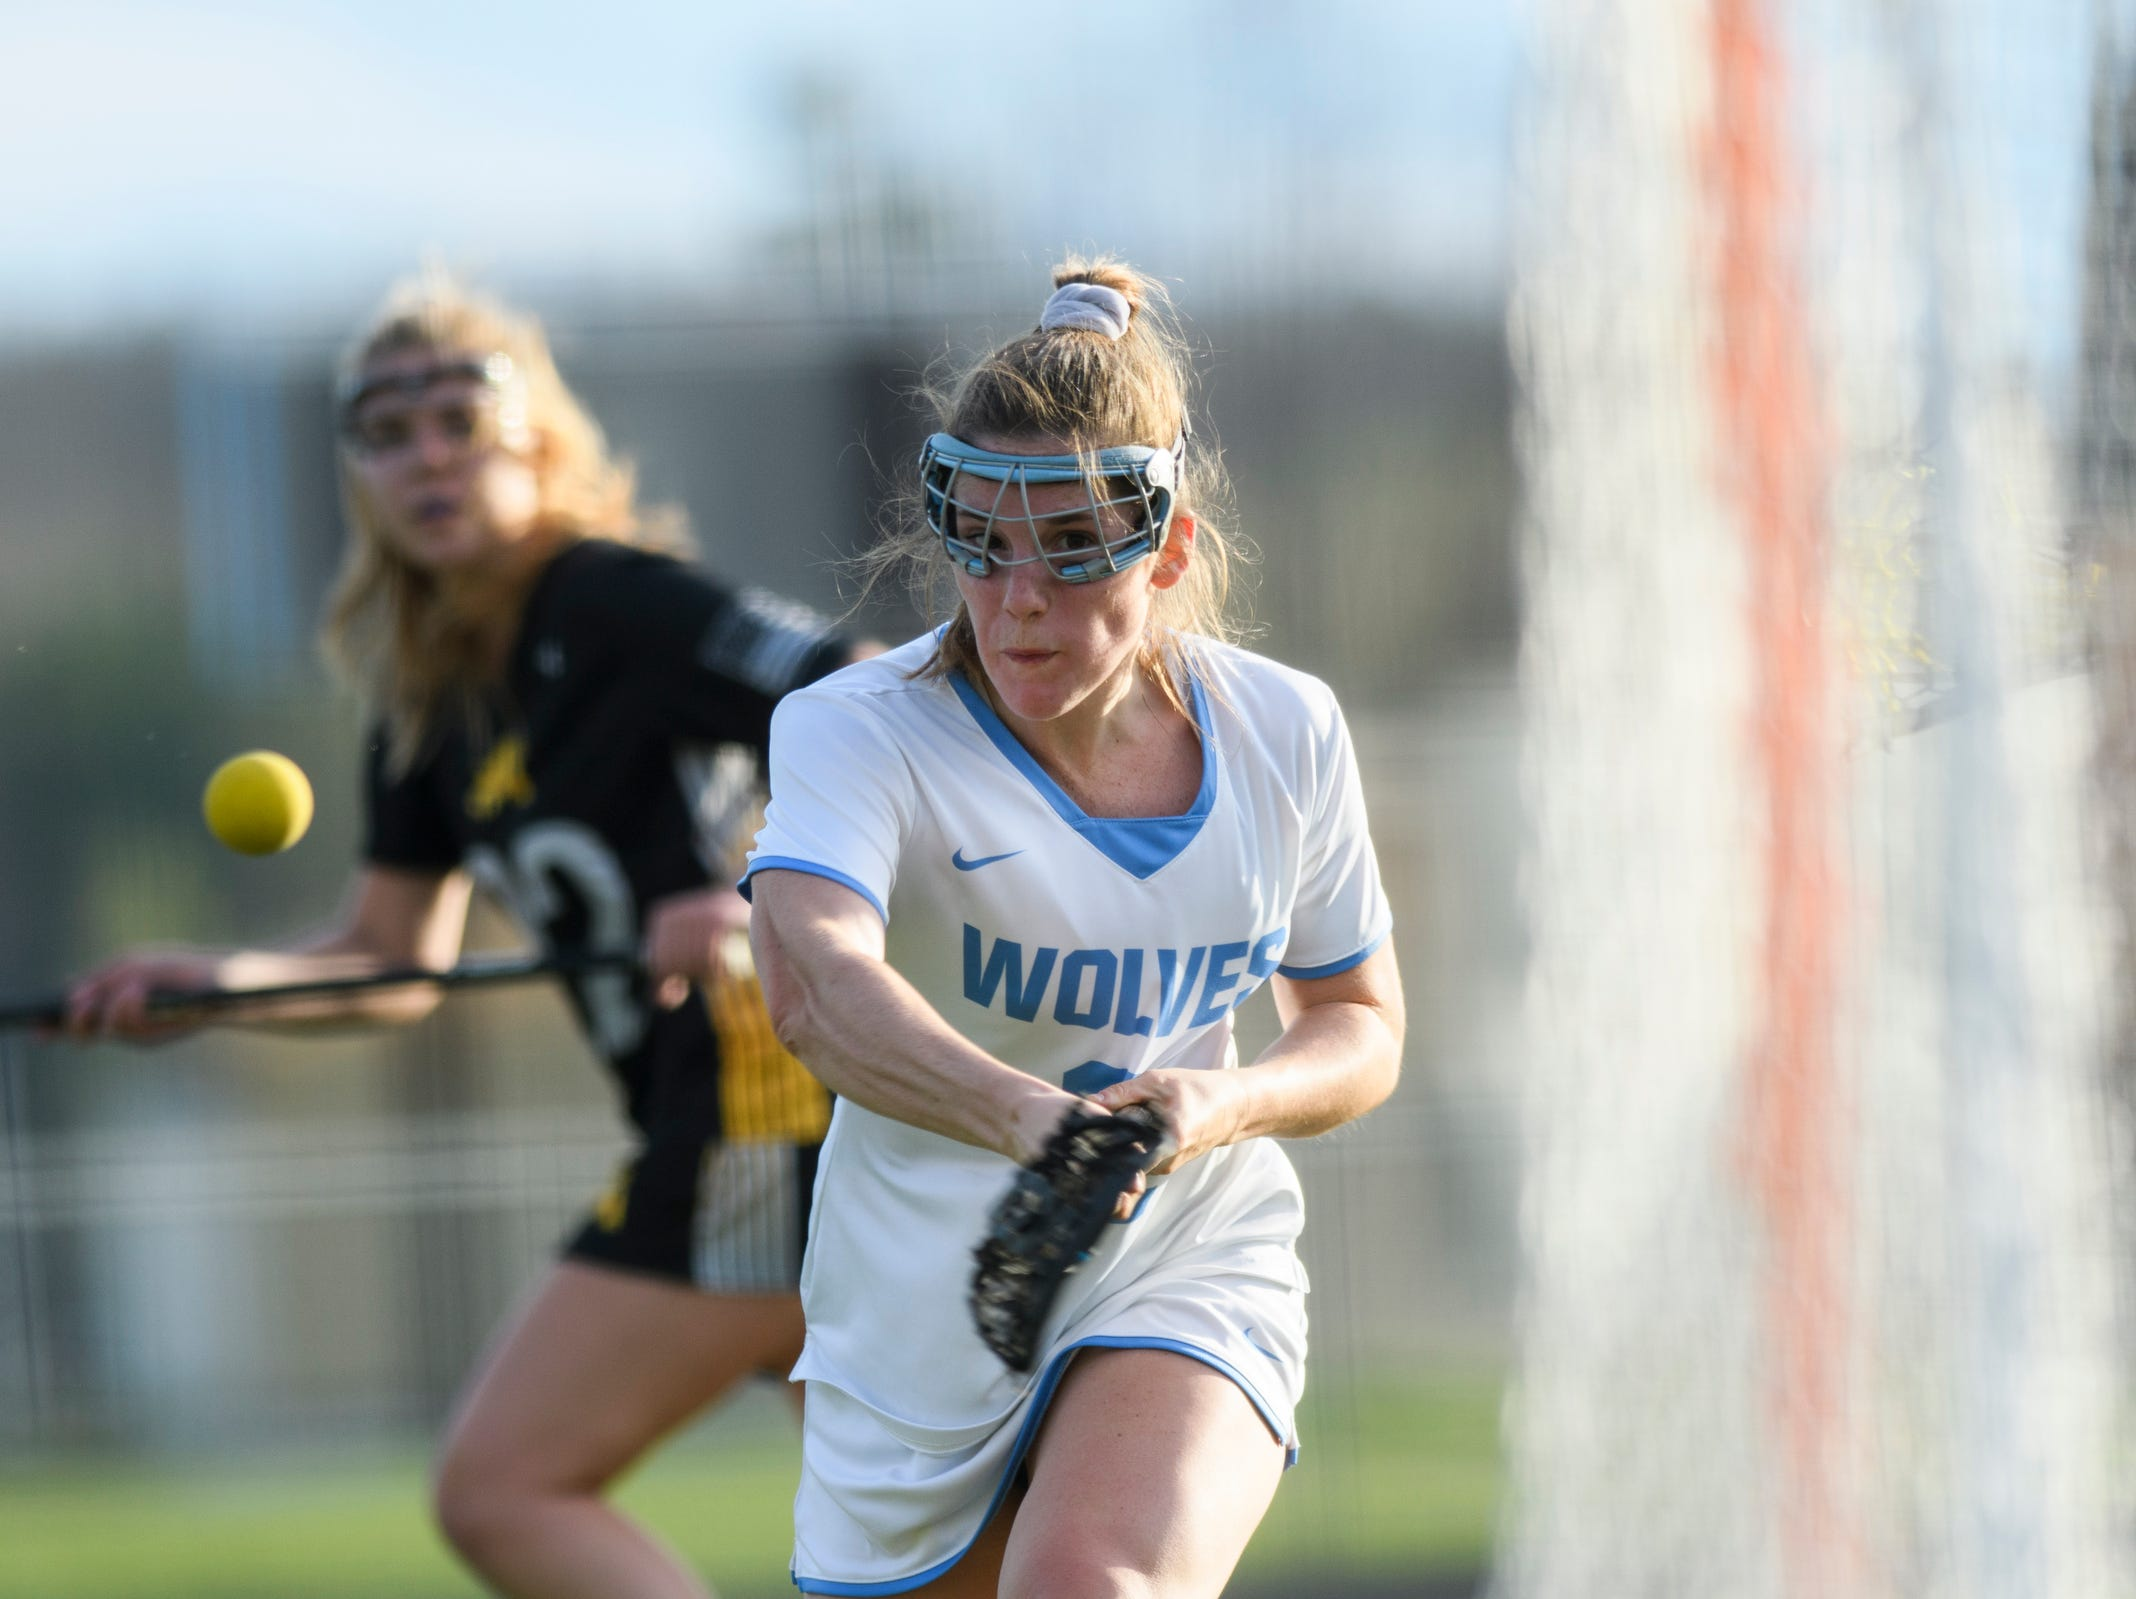 South Burlington's Kate Hall (2) shoots the ball during the high school girls lacrosse game between Burr and Burton Bulldogs and the South Burlington Wolves at Munson Field on Monday afternoon May 6, 2019 in South Burlington, Vermont.